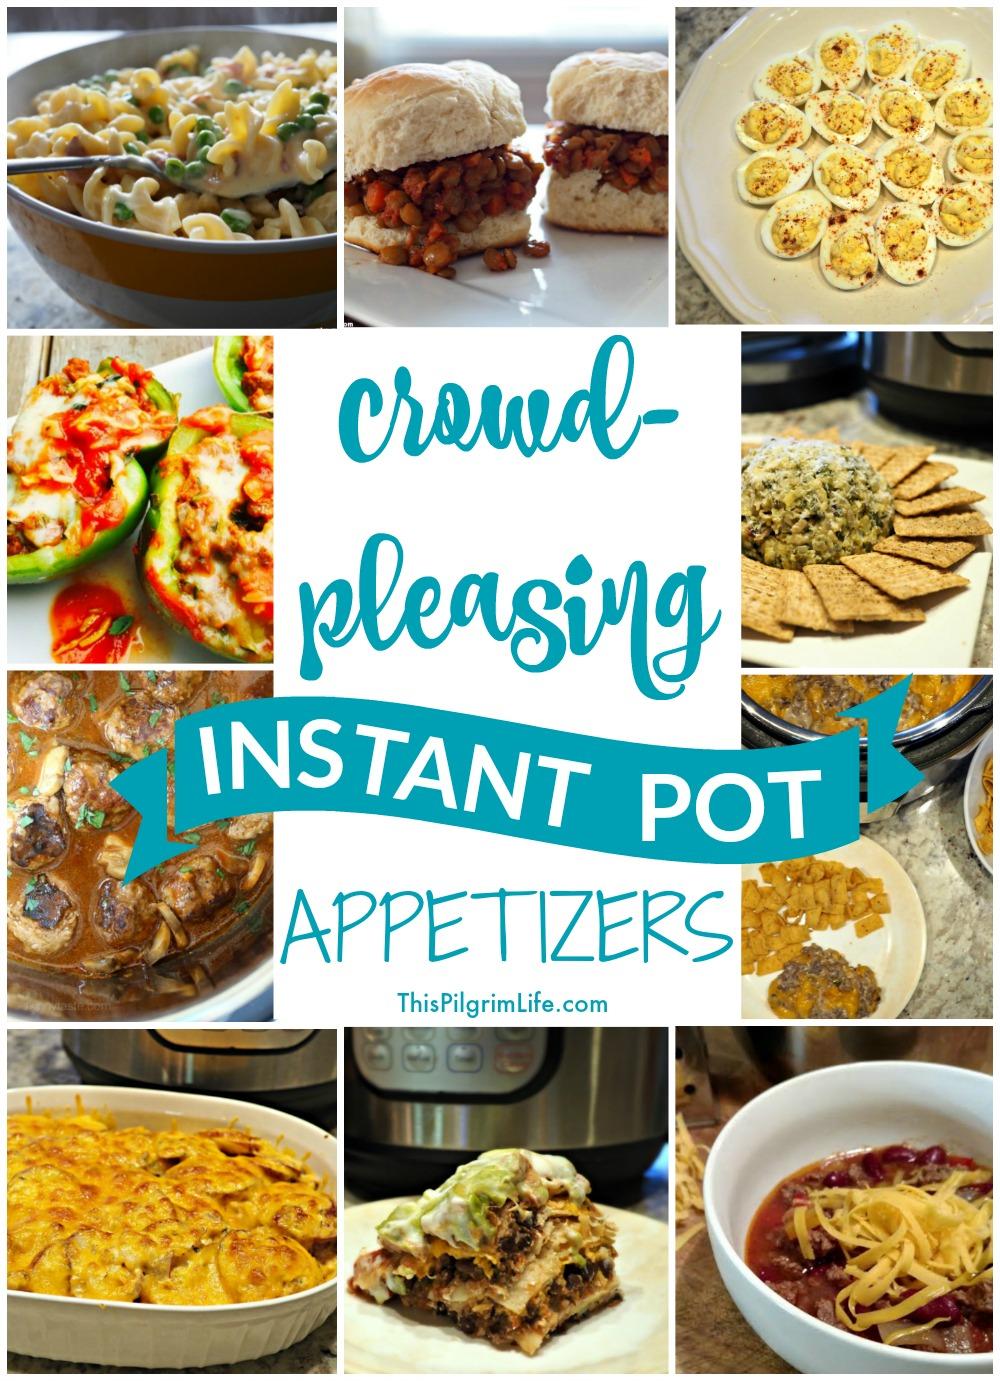 Check out this list of Instant Pot appetizers-- real food ingredients, quick and easy to make, and sure to please the guests at your next party!